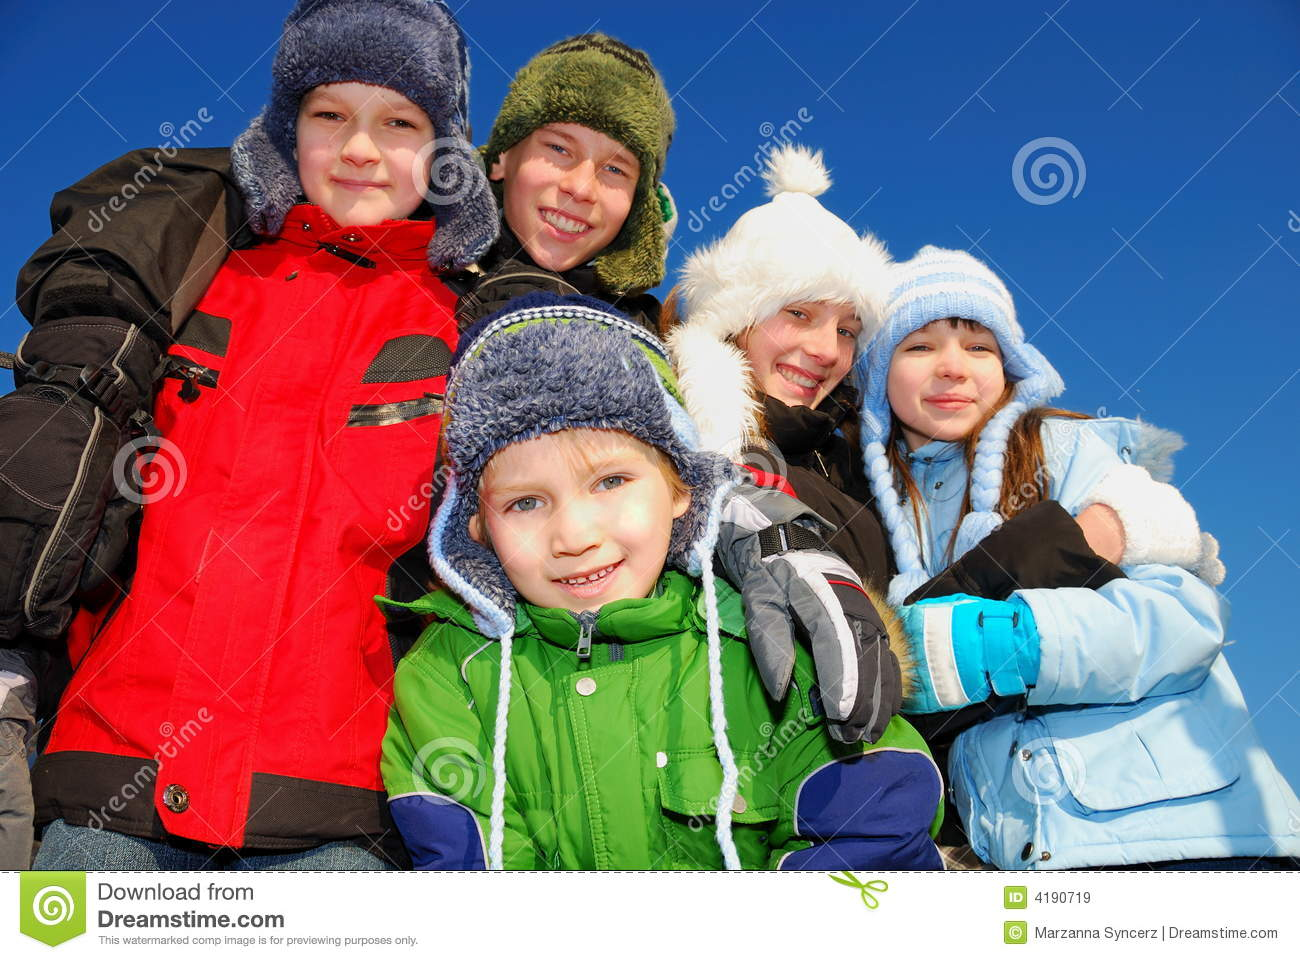 Children In Winter Clothing Royalty Free Stock Images - Image: 4190719